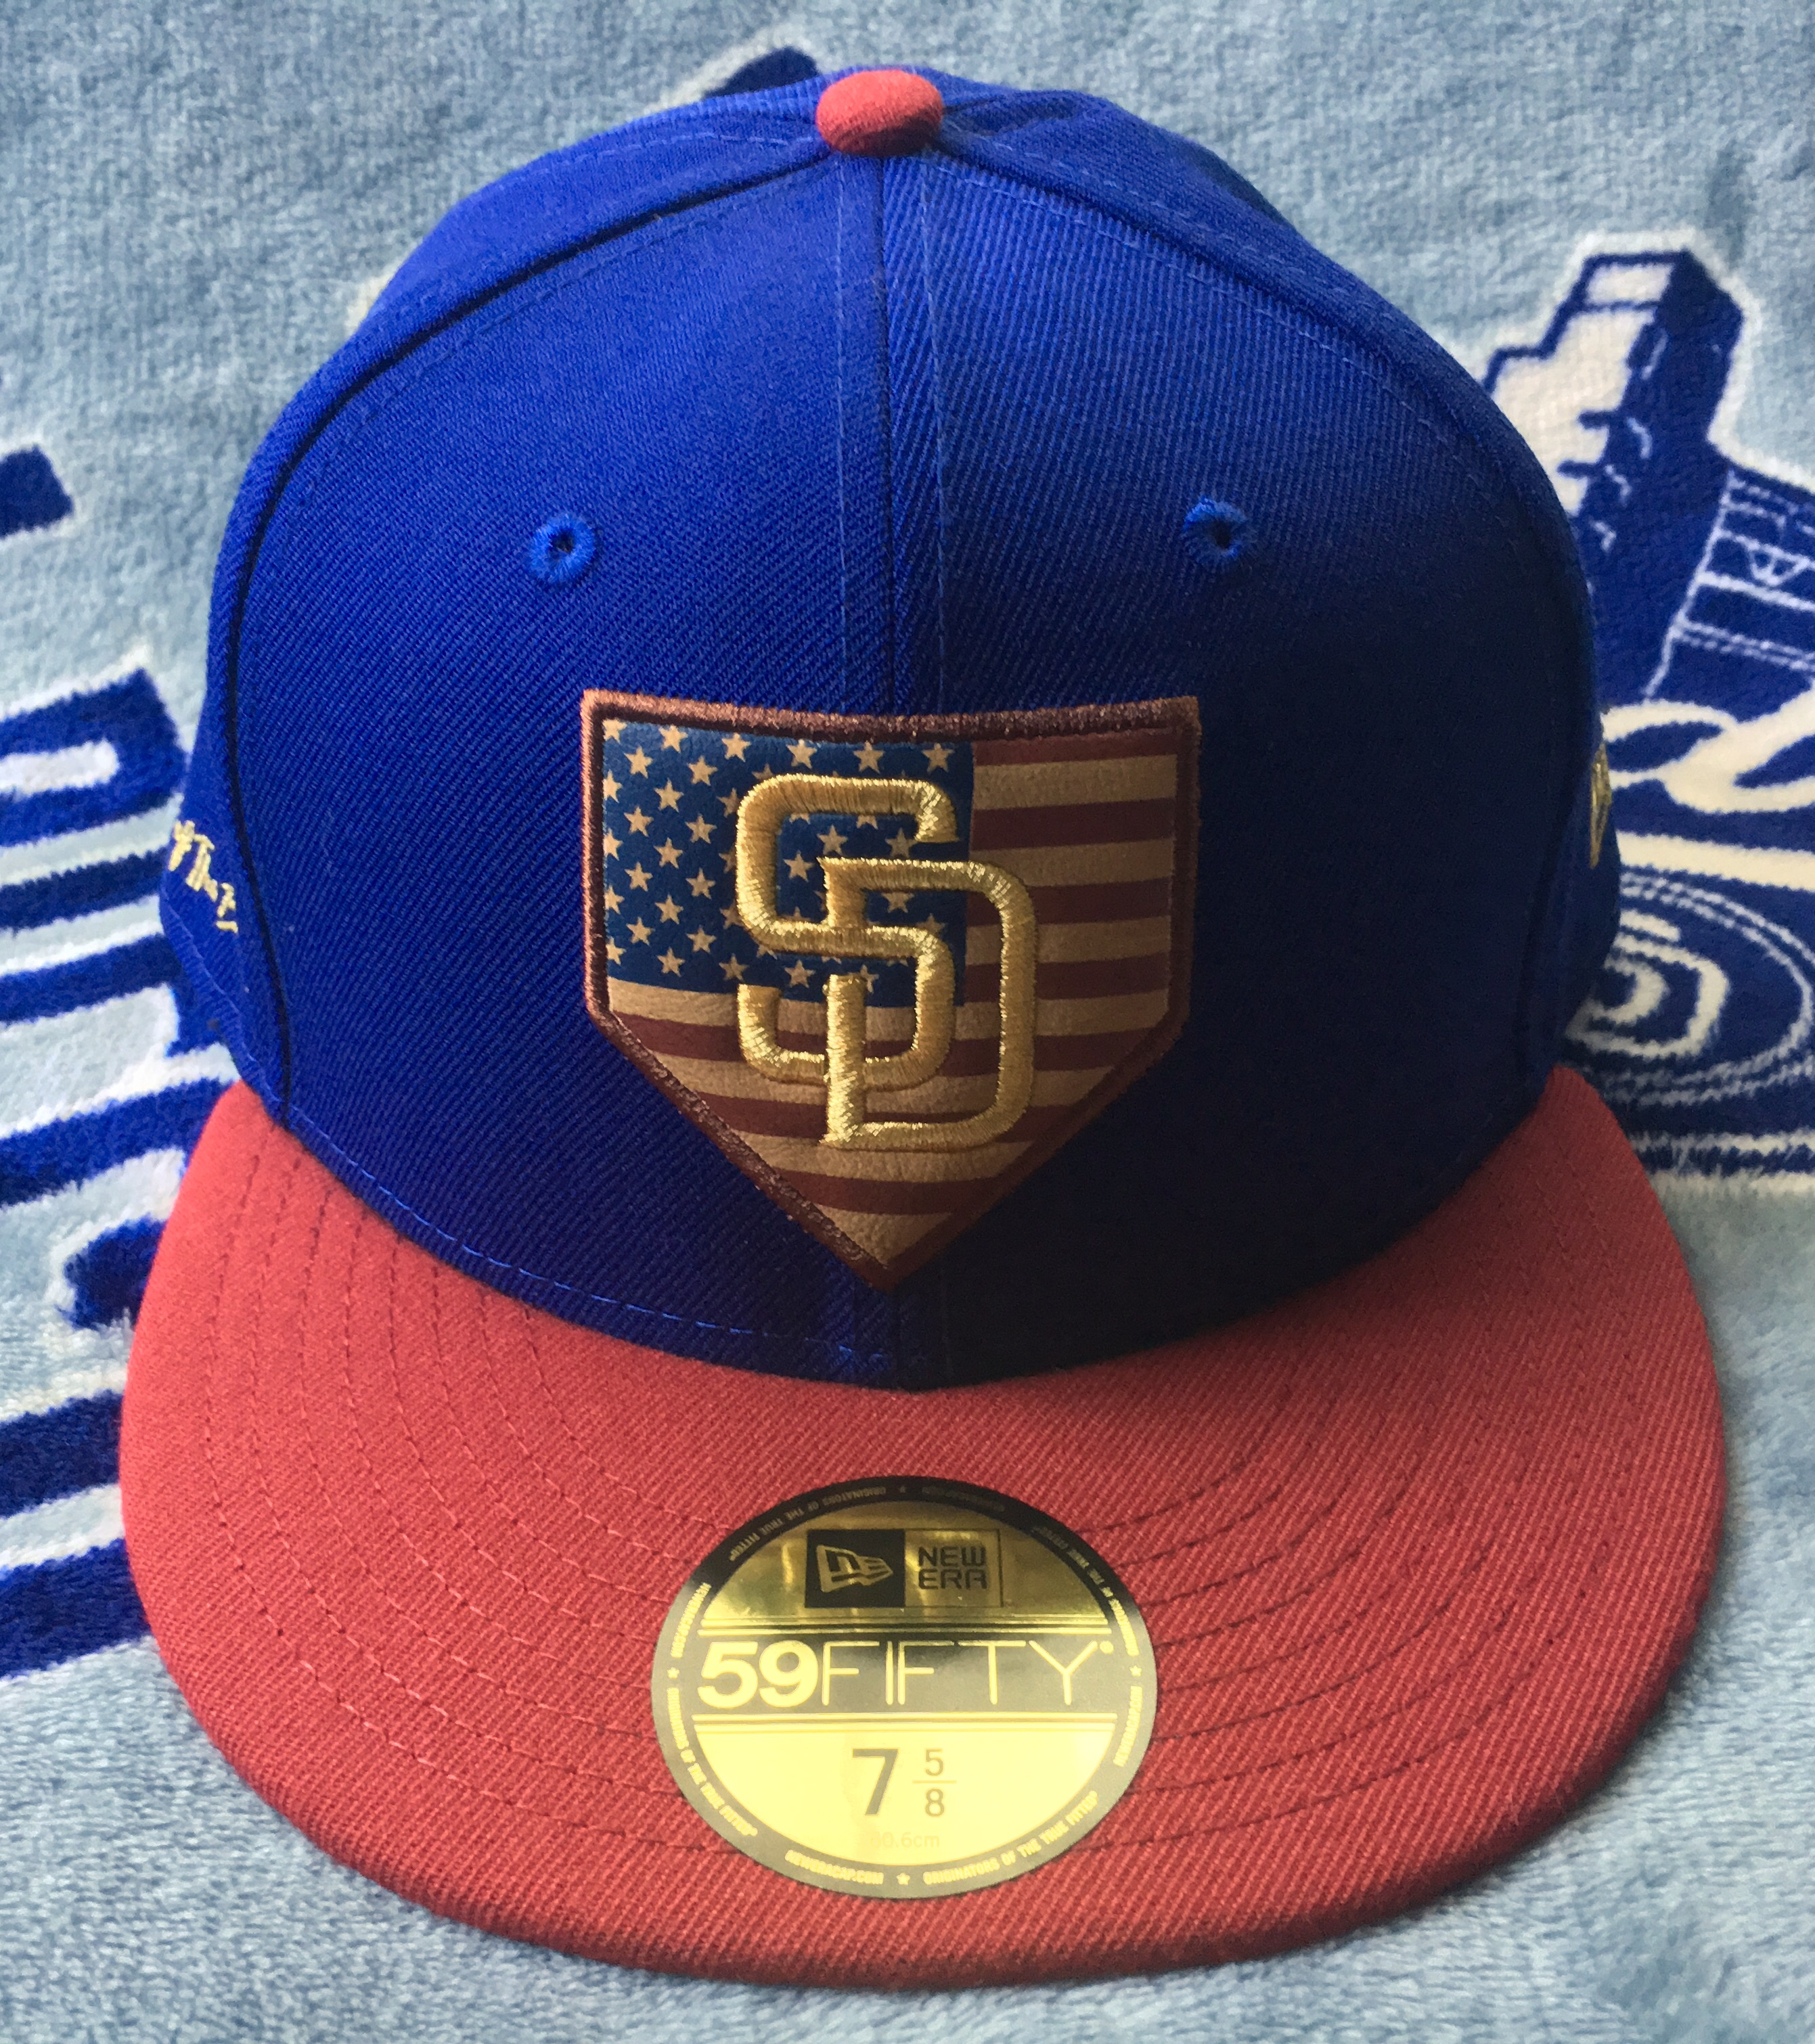 online store e6ef3 12c1b ... era mlb heather basic 59fifty cap canada a6e43 14376  spain patriotism  in caps is nothing new nowadays. since the inception of the stars stripes